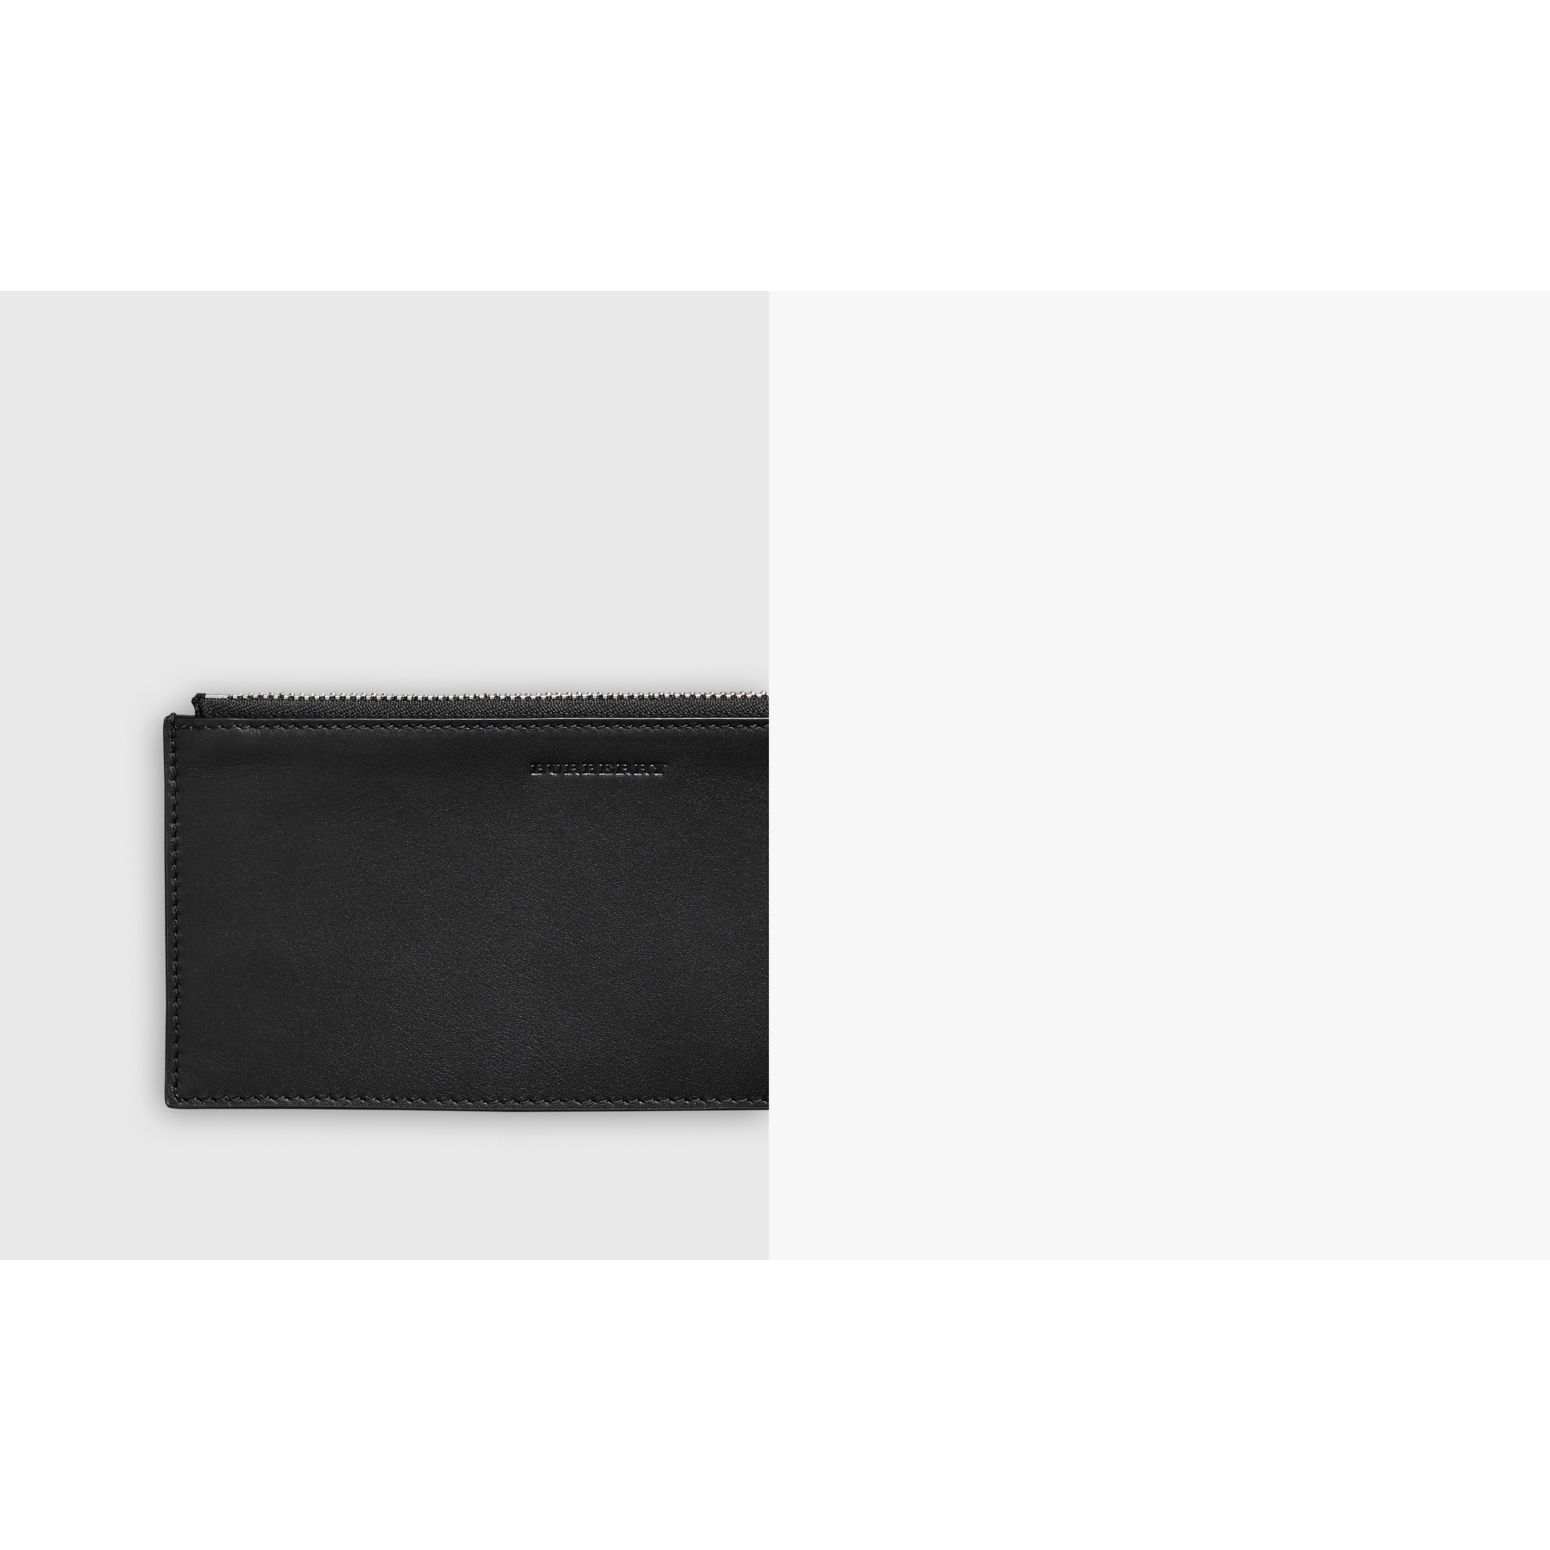 London Check Travel Wallet in Charcoal/black - Men | Burberry Canada - gallery image 1